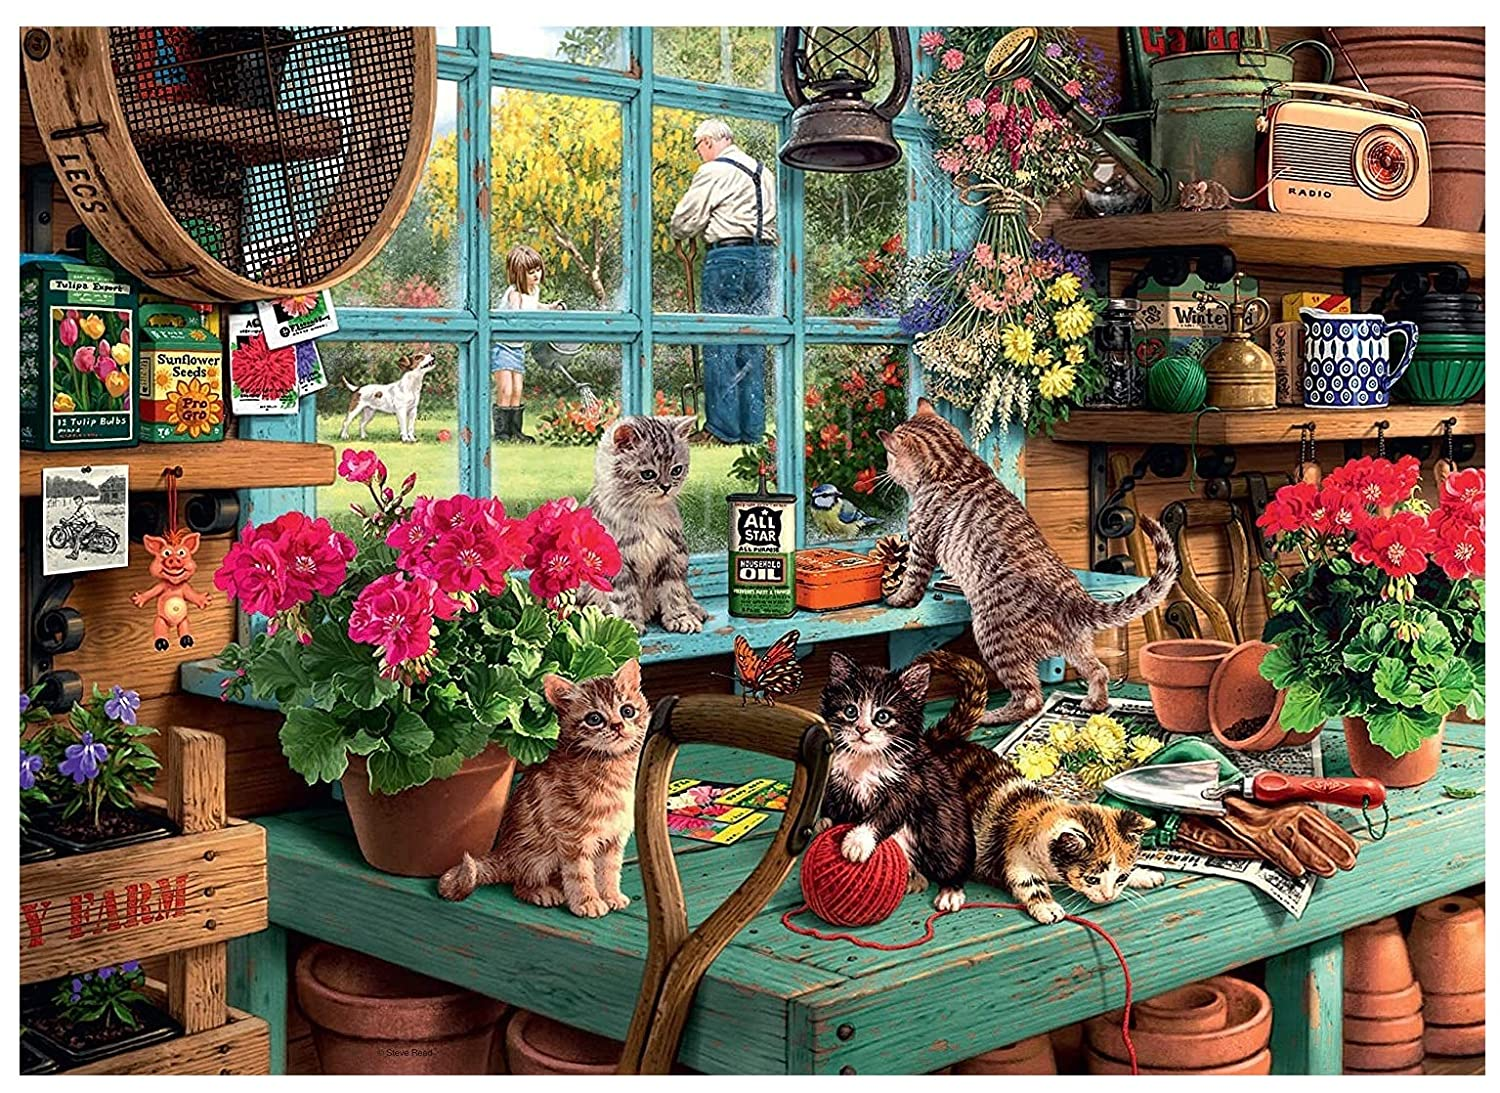 Cats and Gardenning,14ct counted cross stitch kit embroidery kits, 400x286stitch,82x63cm Egyptian cotton counted scenery cross stitch kits